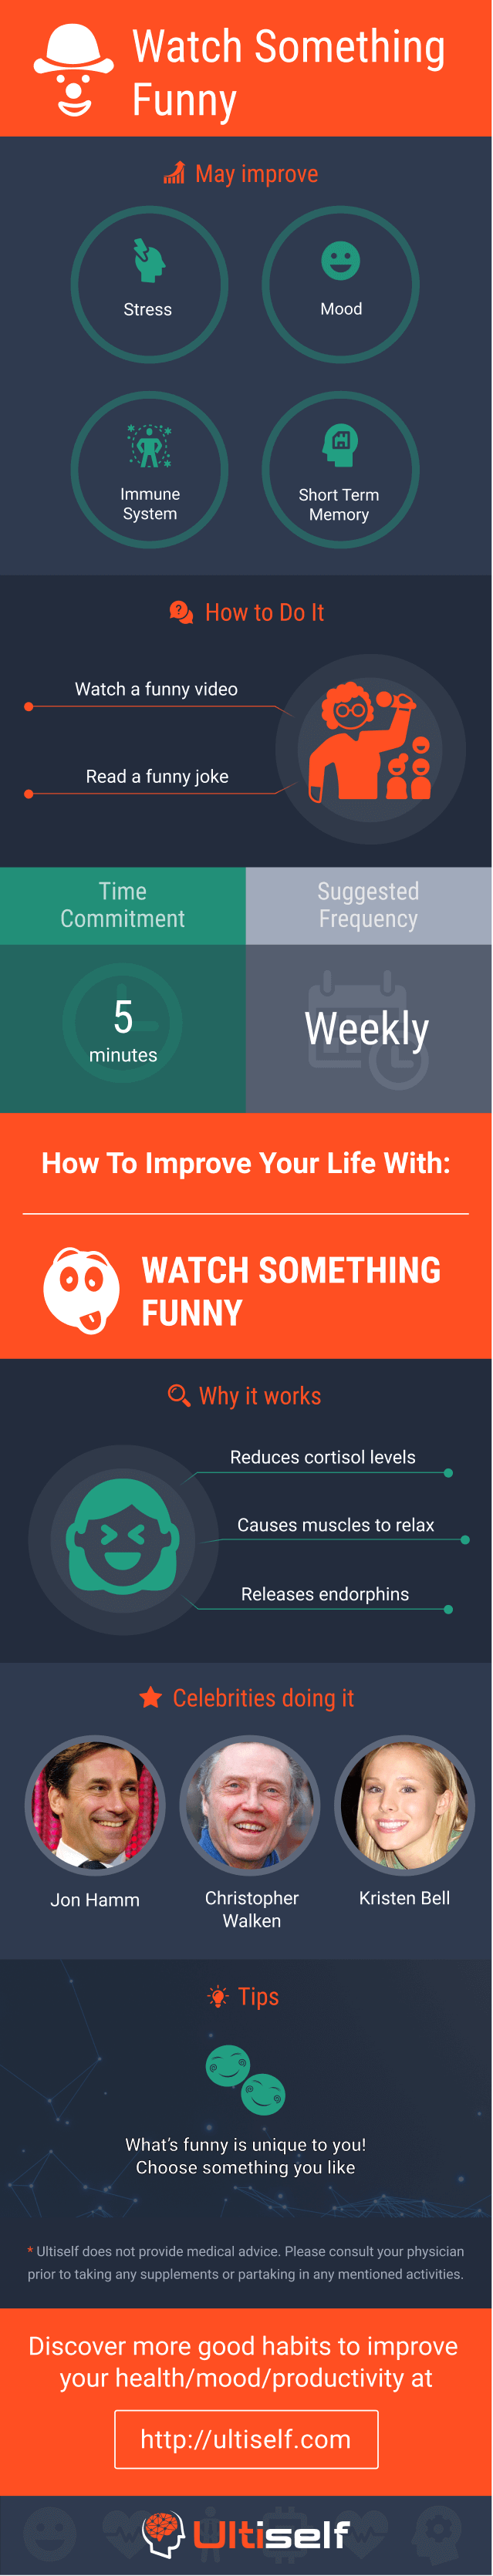 Watch Something Funny infographic